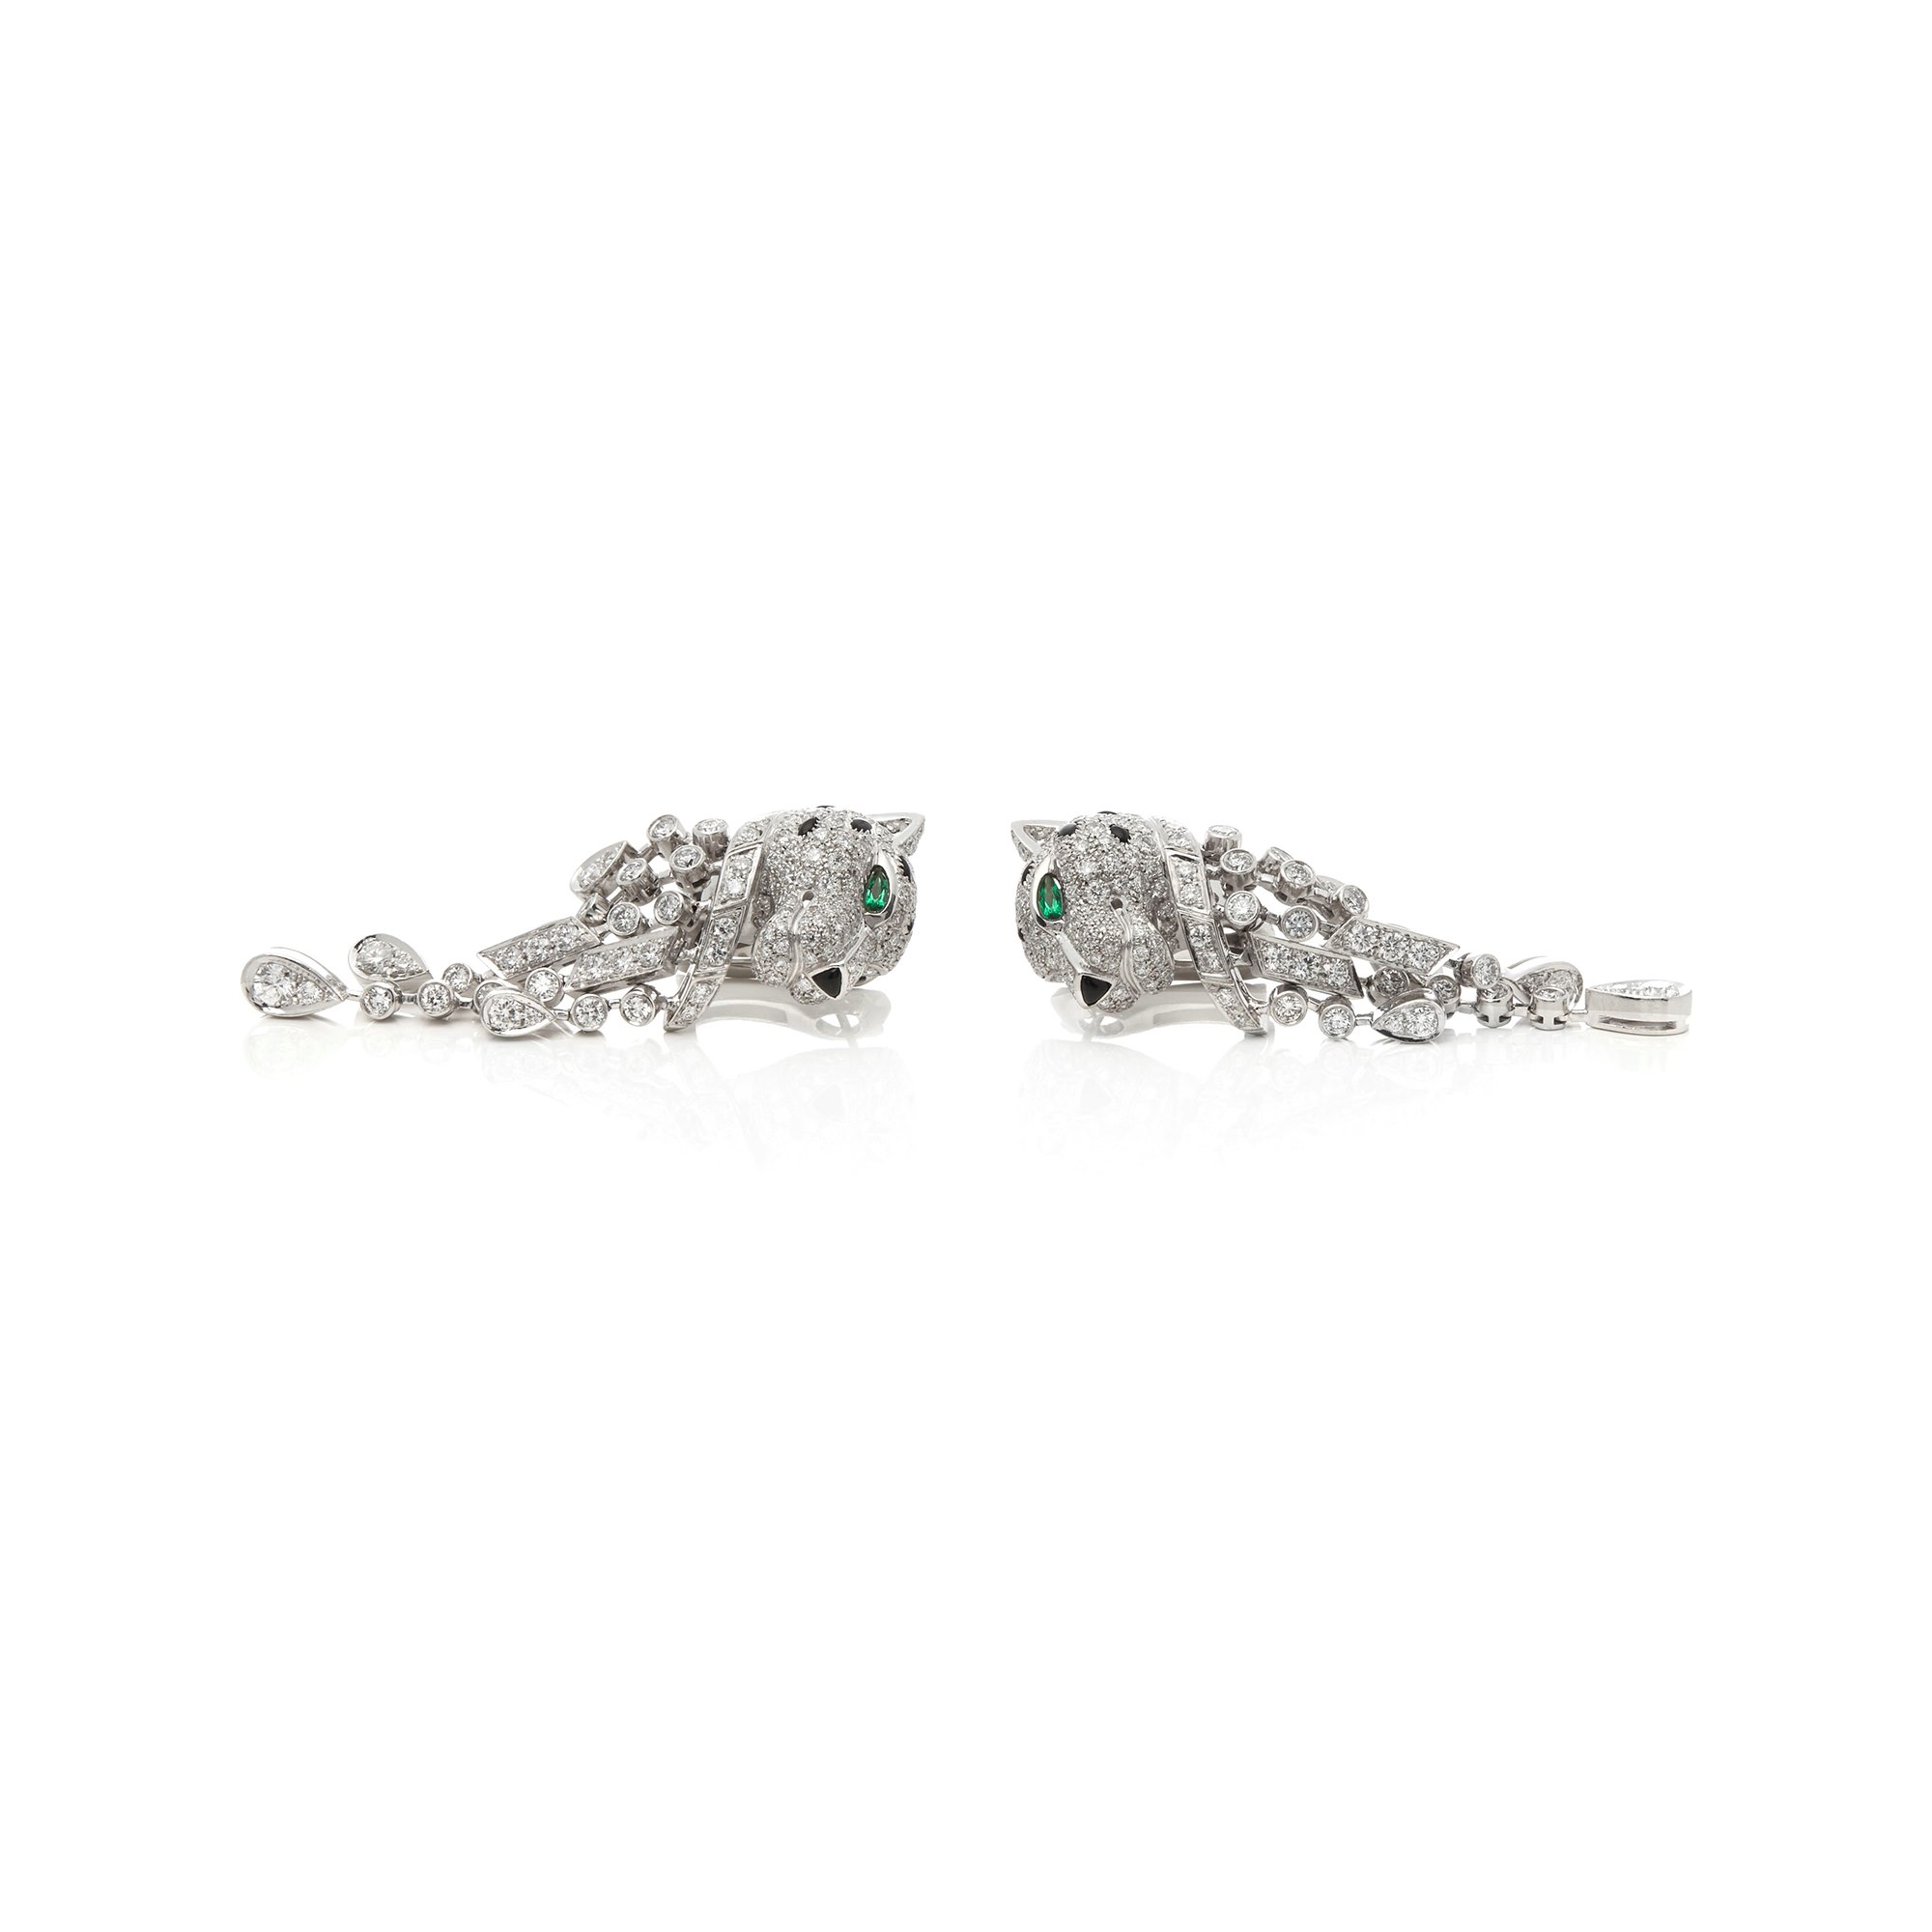 Cartier Platinum Diamond, Emerald & Onyx Panthère Earrings In The Style Of Cartier